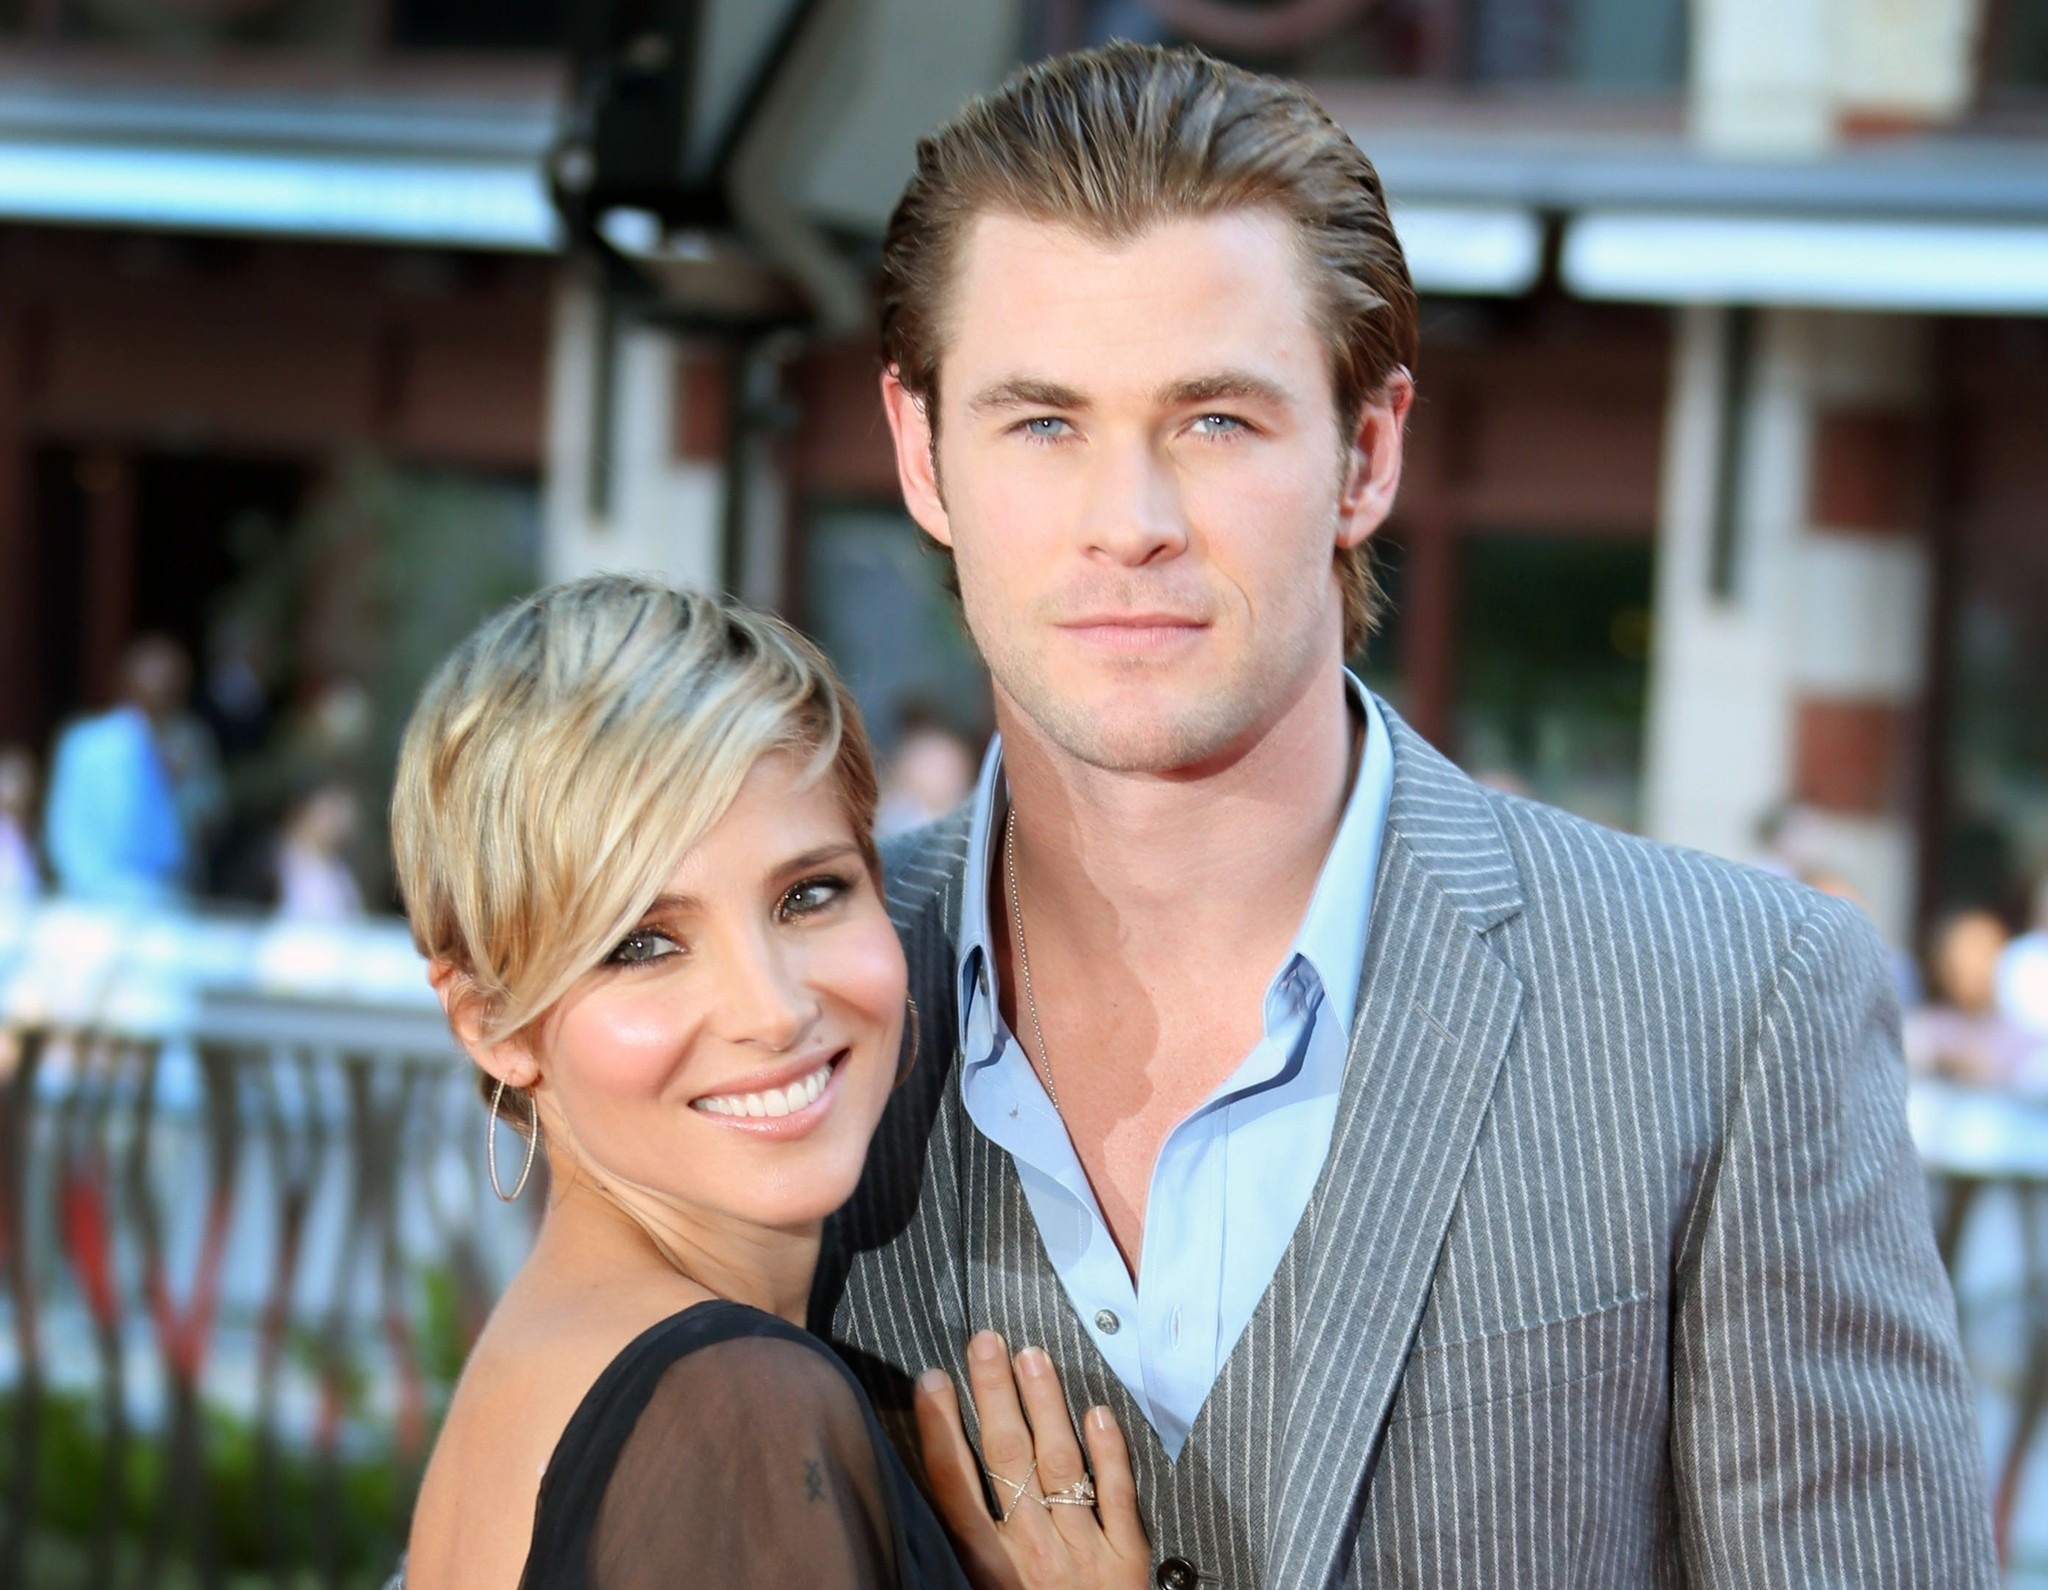 'Thor' Star Chris Hemsworth's Wife Is Pregnant With Baby